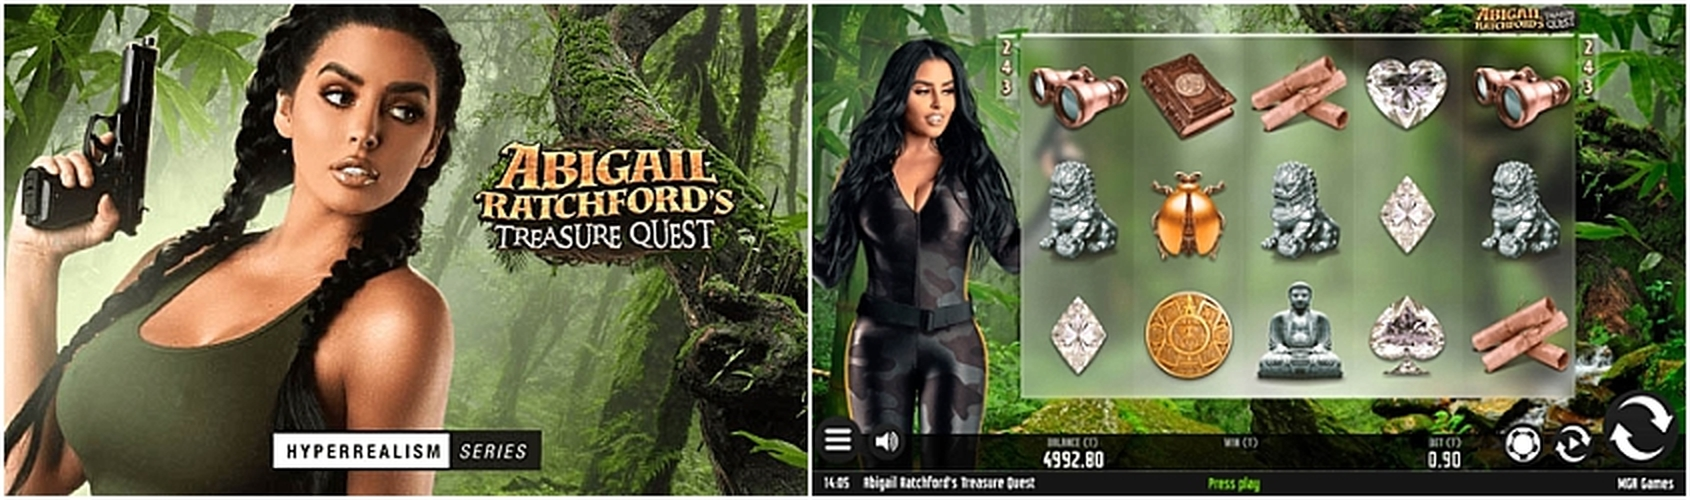 Abigail Ratchfords Treasure Quest Online Slot Demo Game by MGA